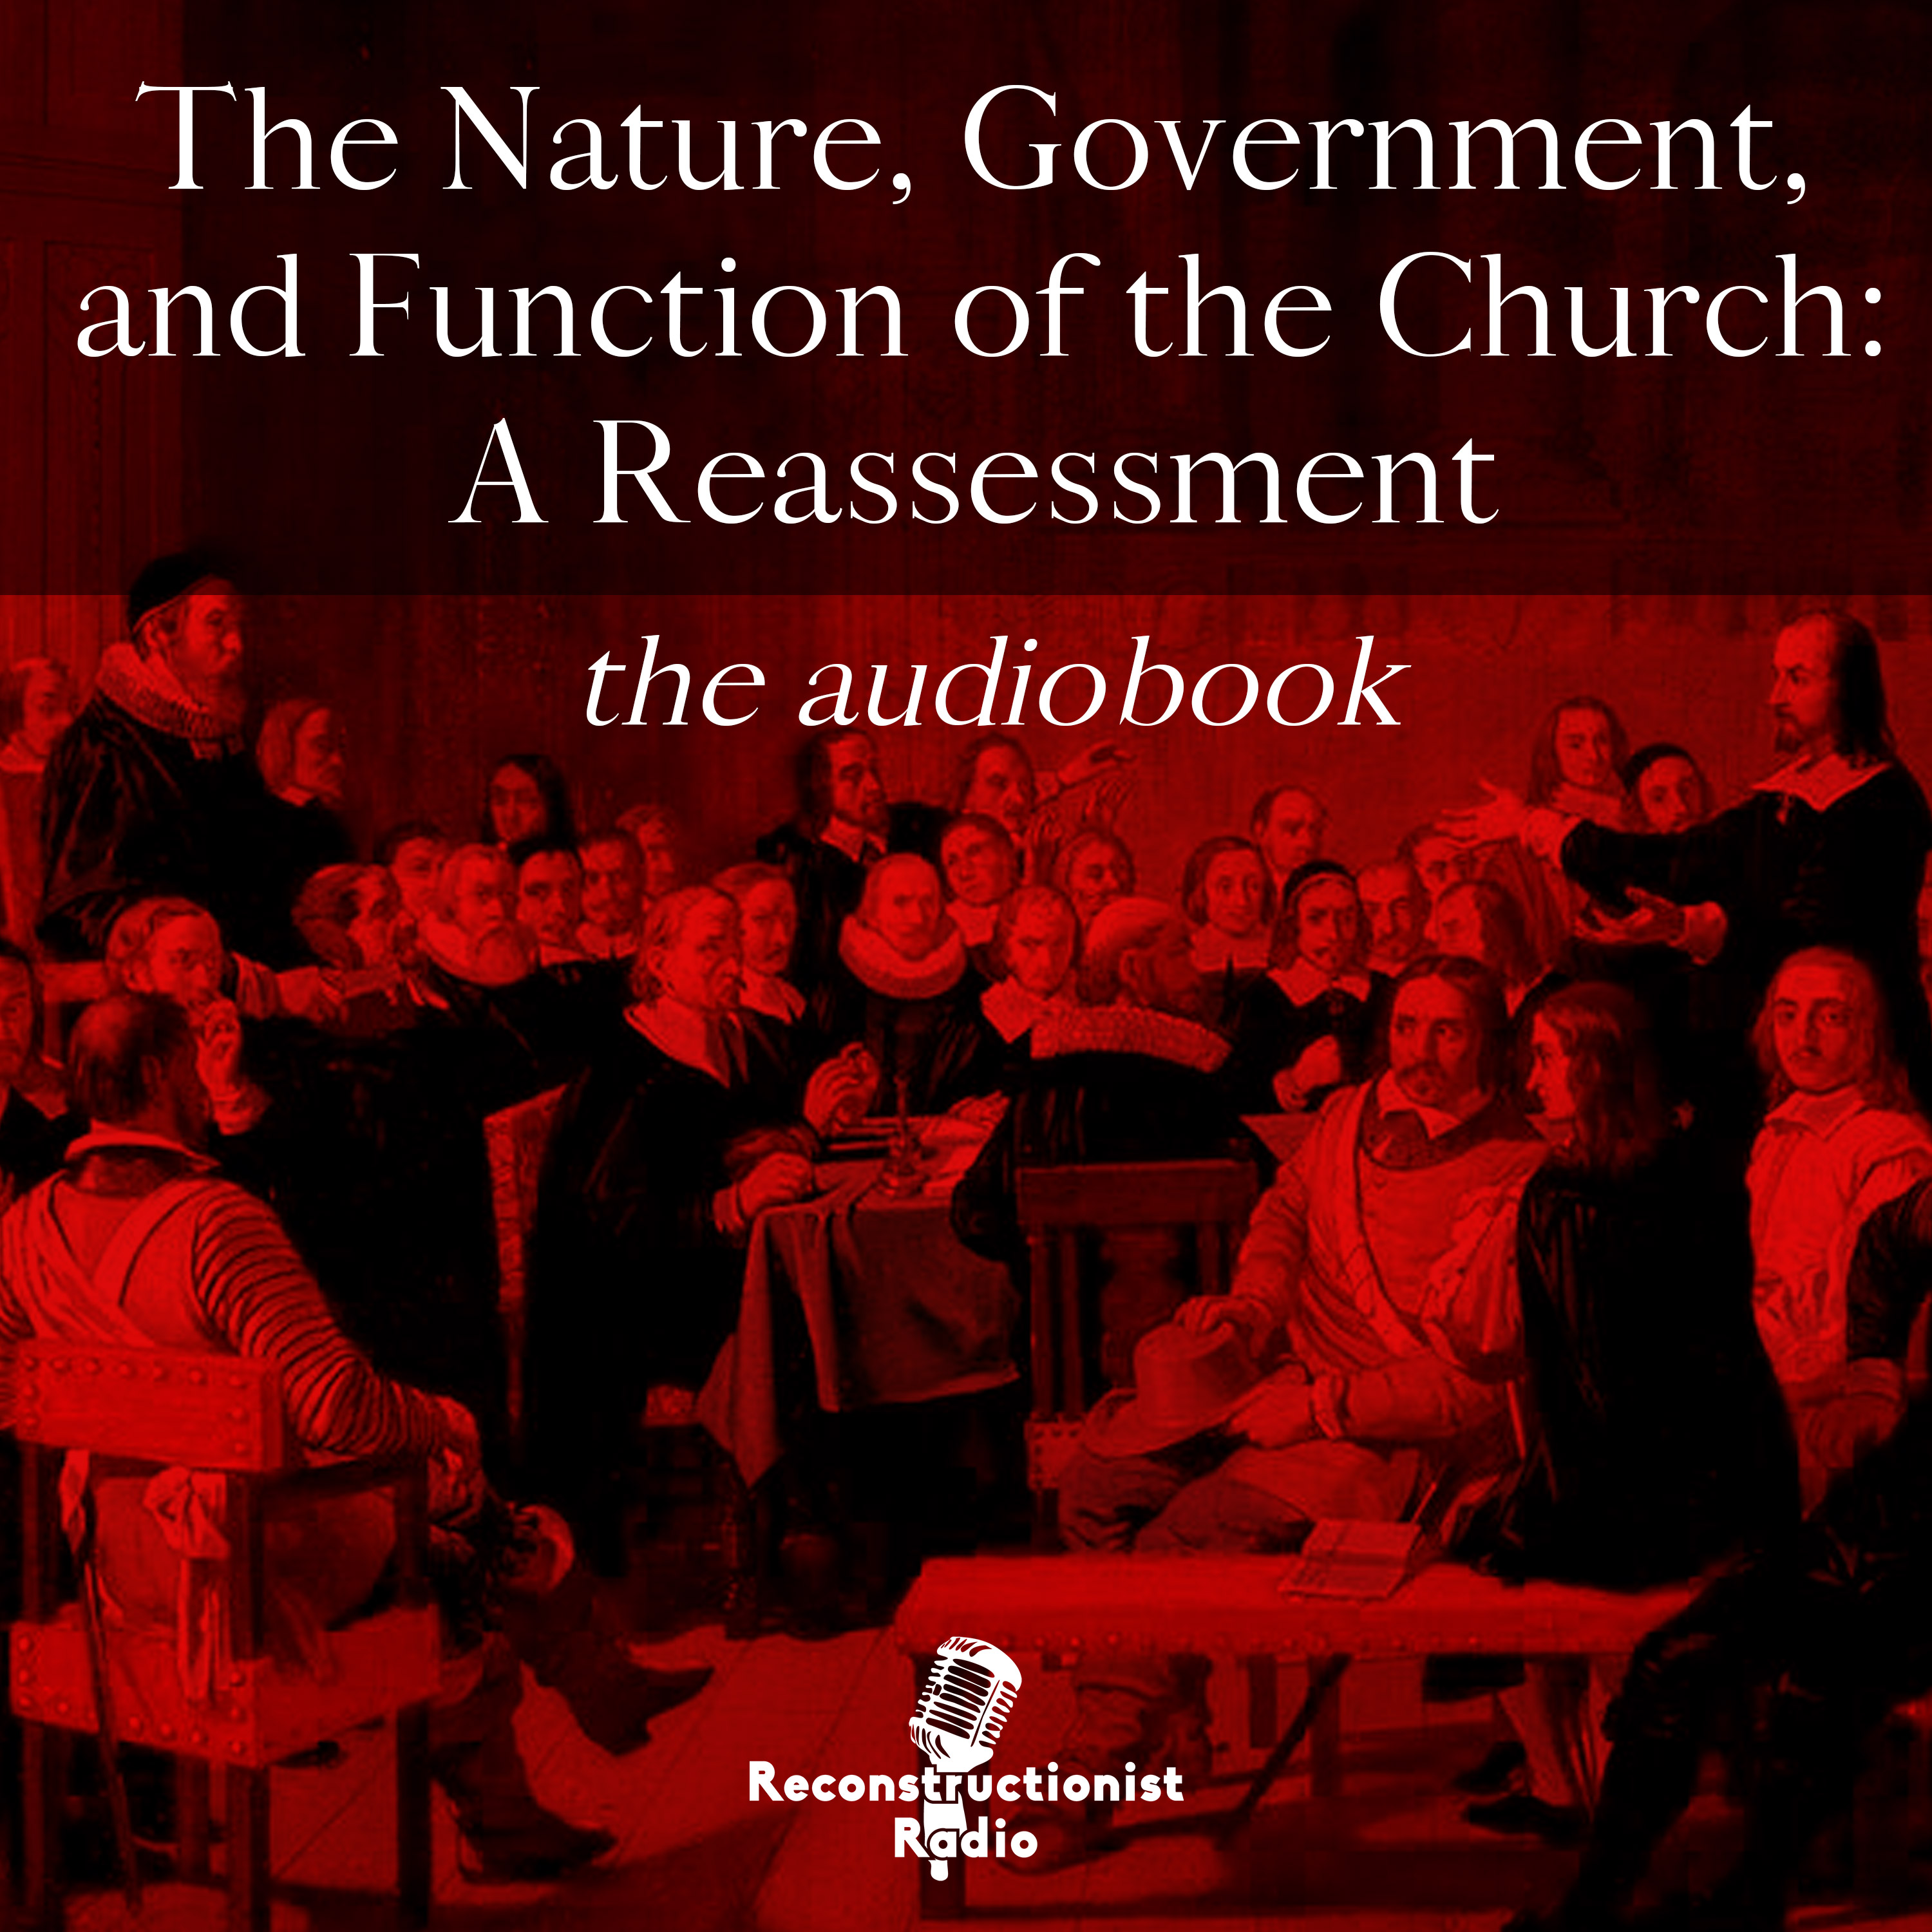 The Nature, Government, and Function of the Church: A Reassessment